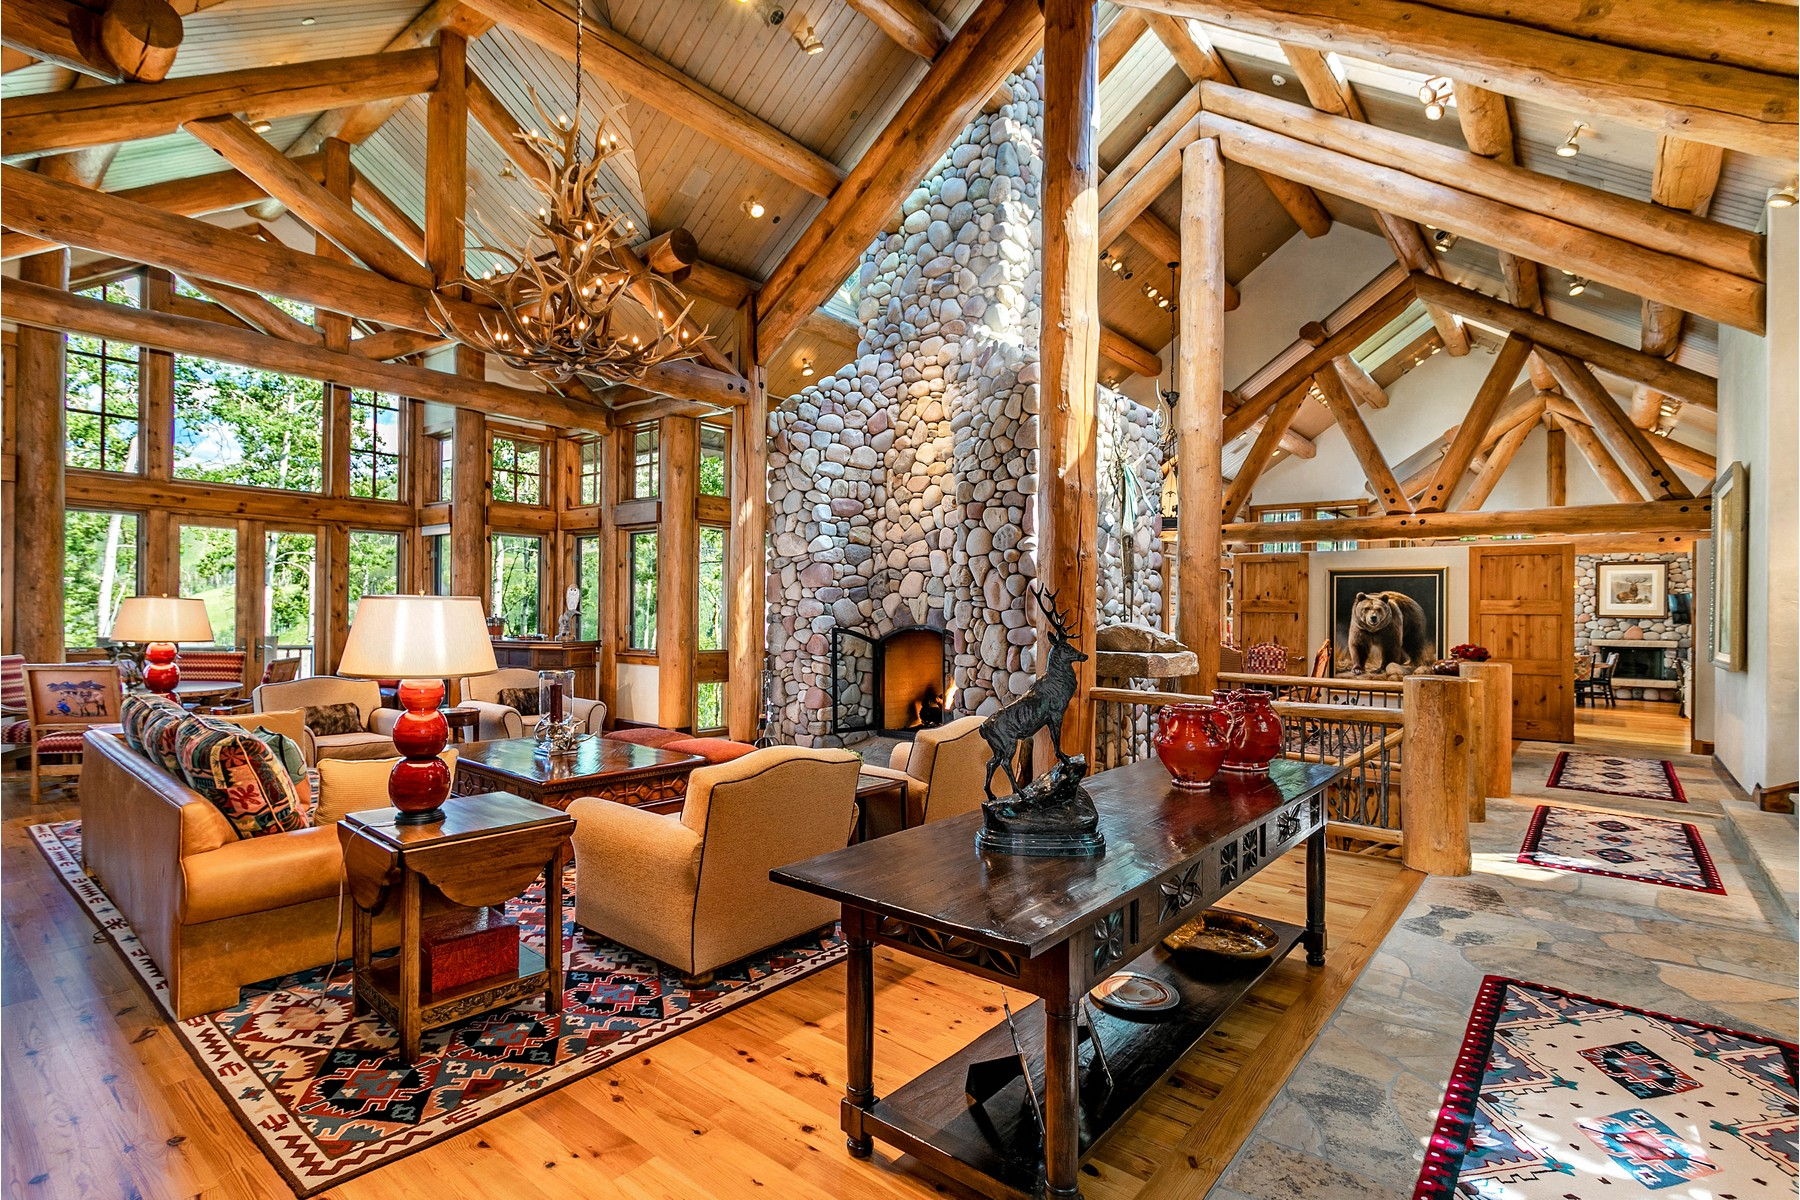 Single Family Home for Active at Architectural Log Masterpiece 246 Strawberry Park Ct Beaver Creek, Colorado 81620 United States